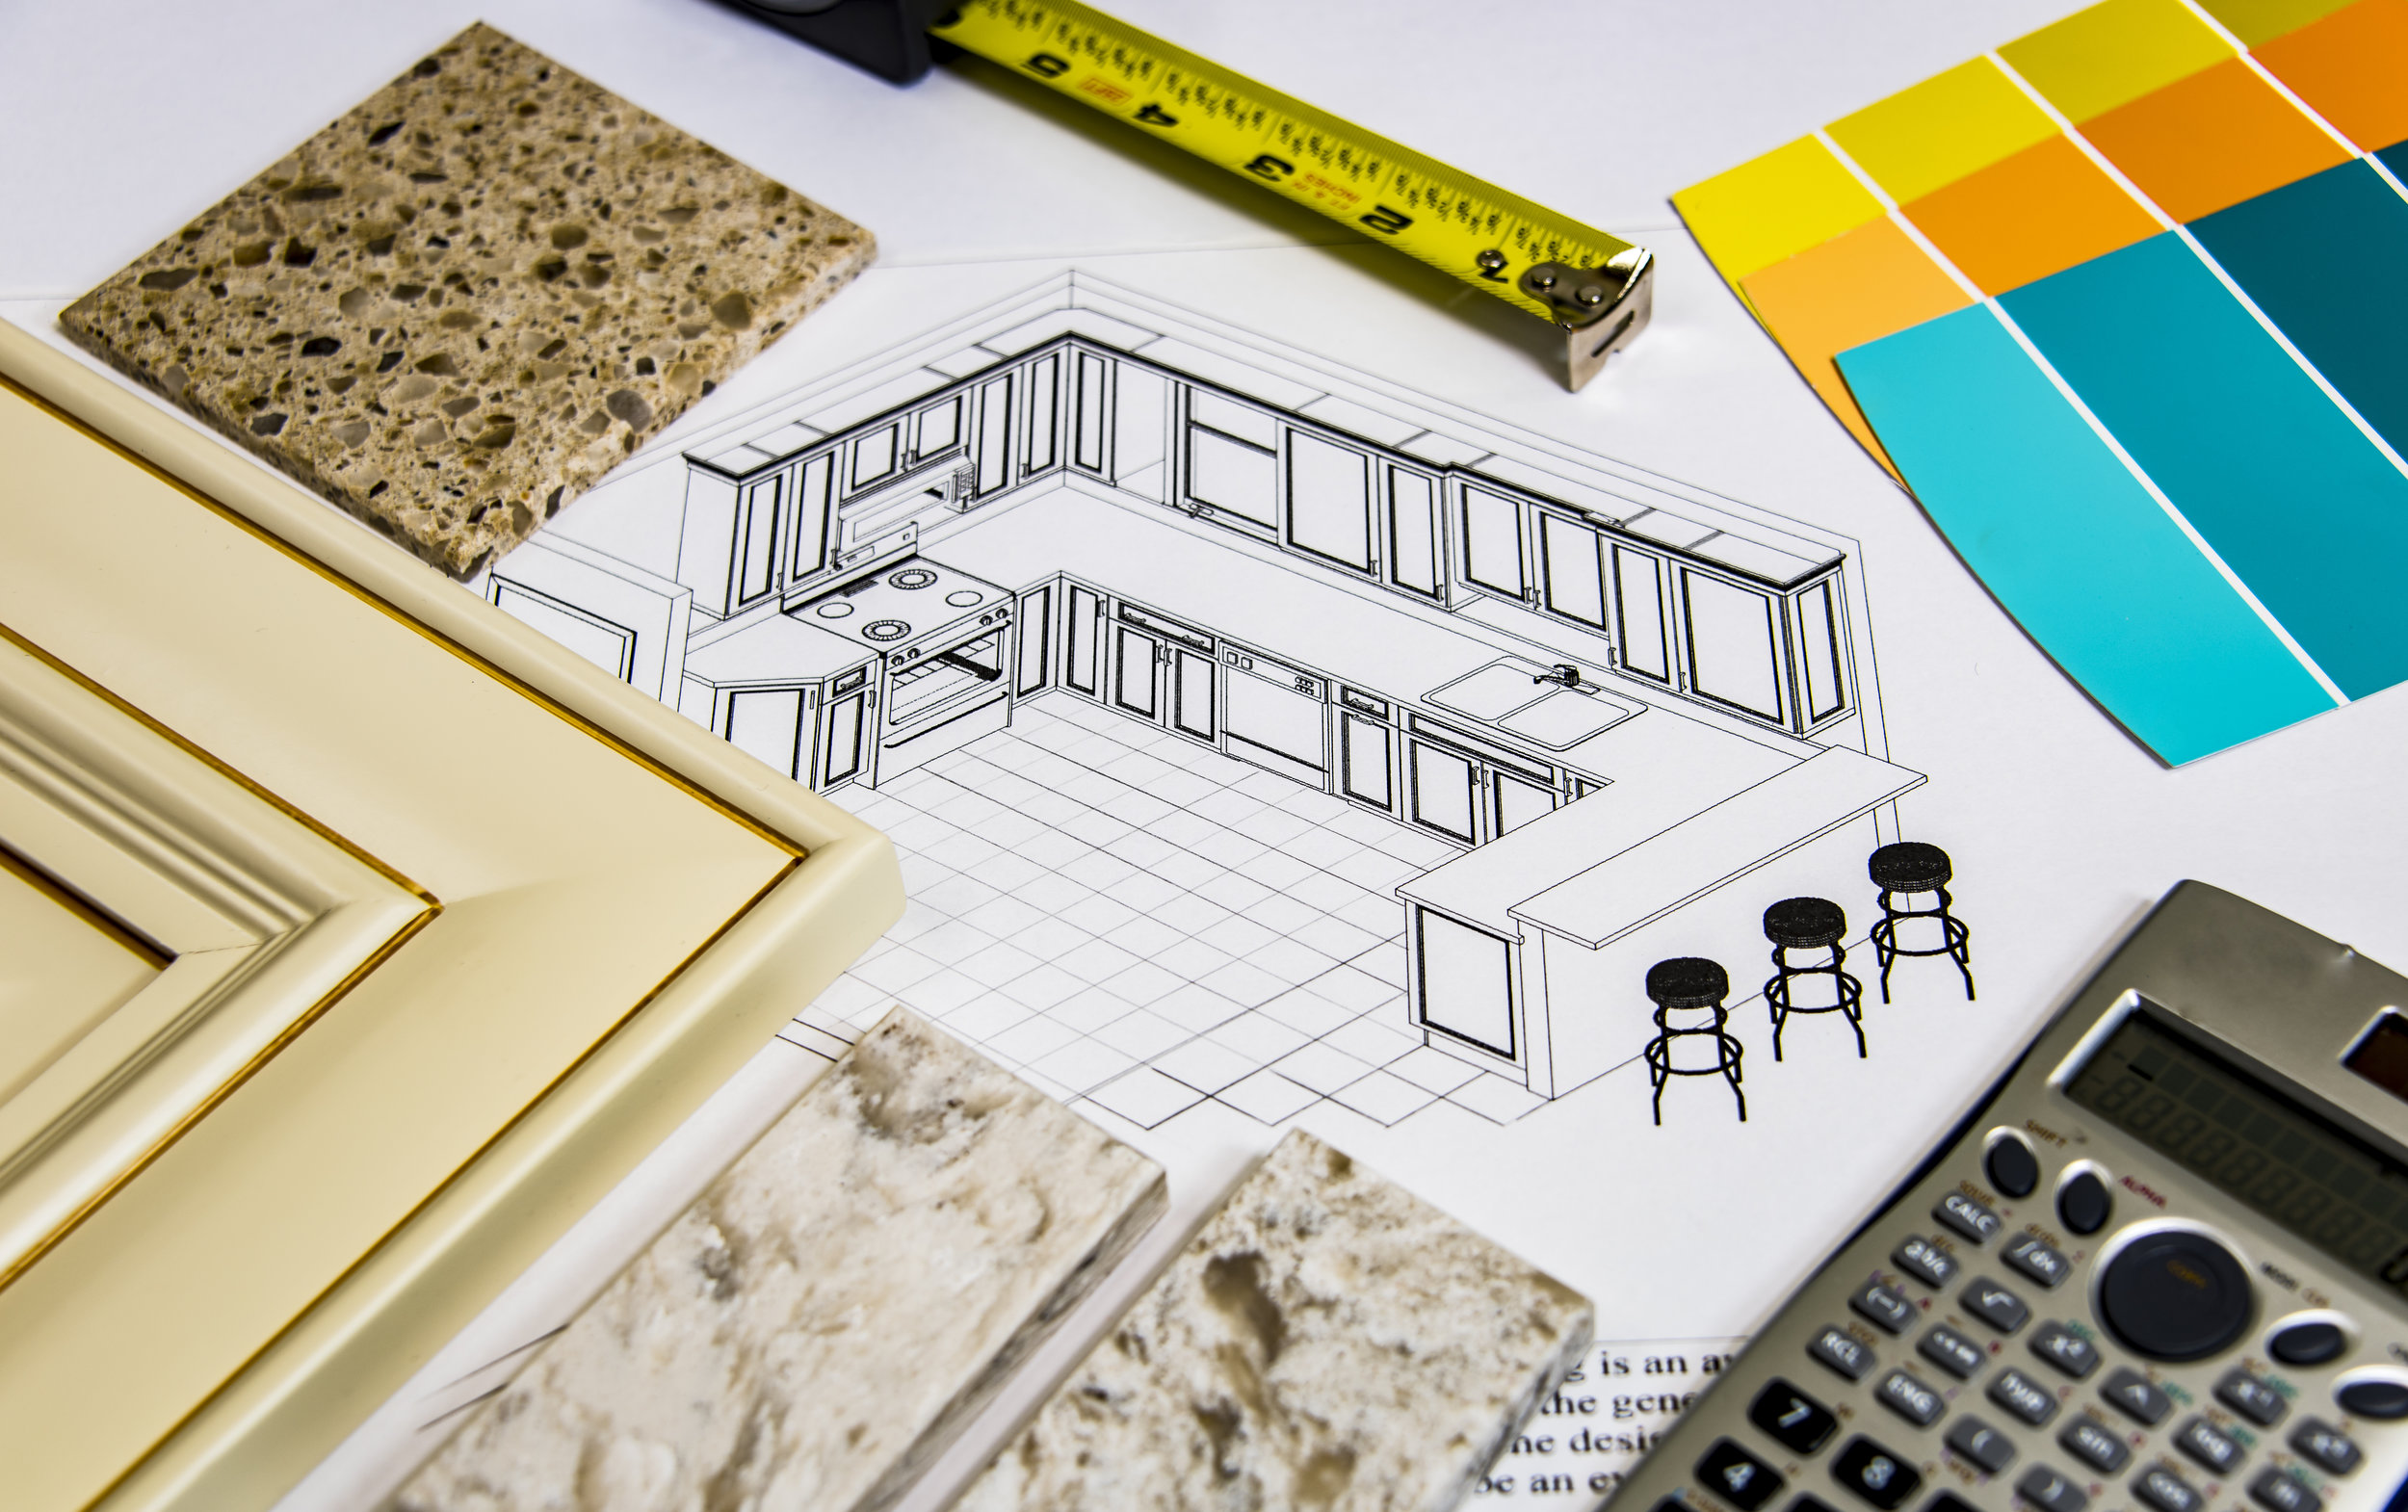 Design - We offer free layouts and customer designs to suit your needs. Not only do we offer layouts, you can see your kitchen before it is ordered! We offer floor plans, perspectives, and elevations. Whether you are on a time constraint or a budget, we offer designs and options to fulfill your needs. See us today!